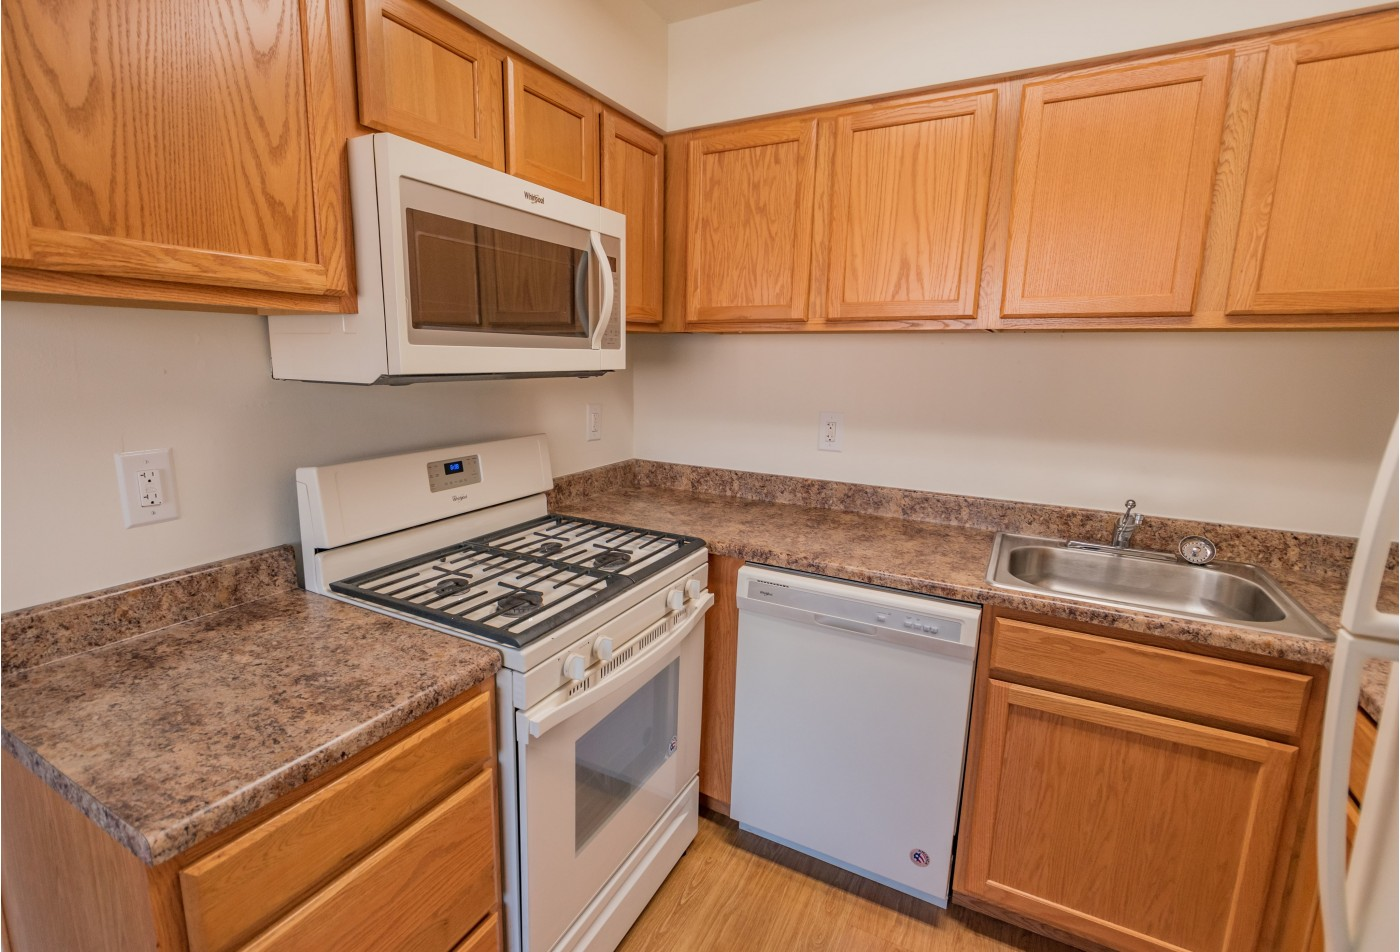 State-of-the-Art Kitchen | Penndel PA Apartment Homes | Millcreek Village Apartments